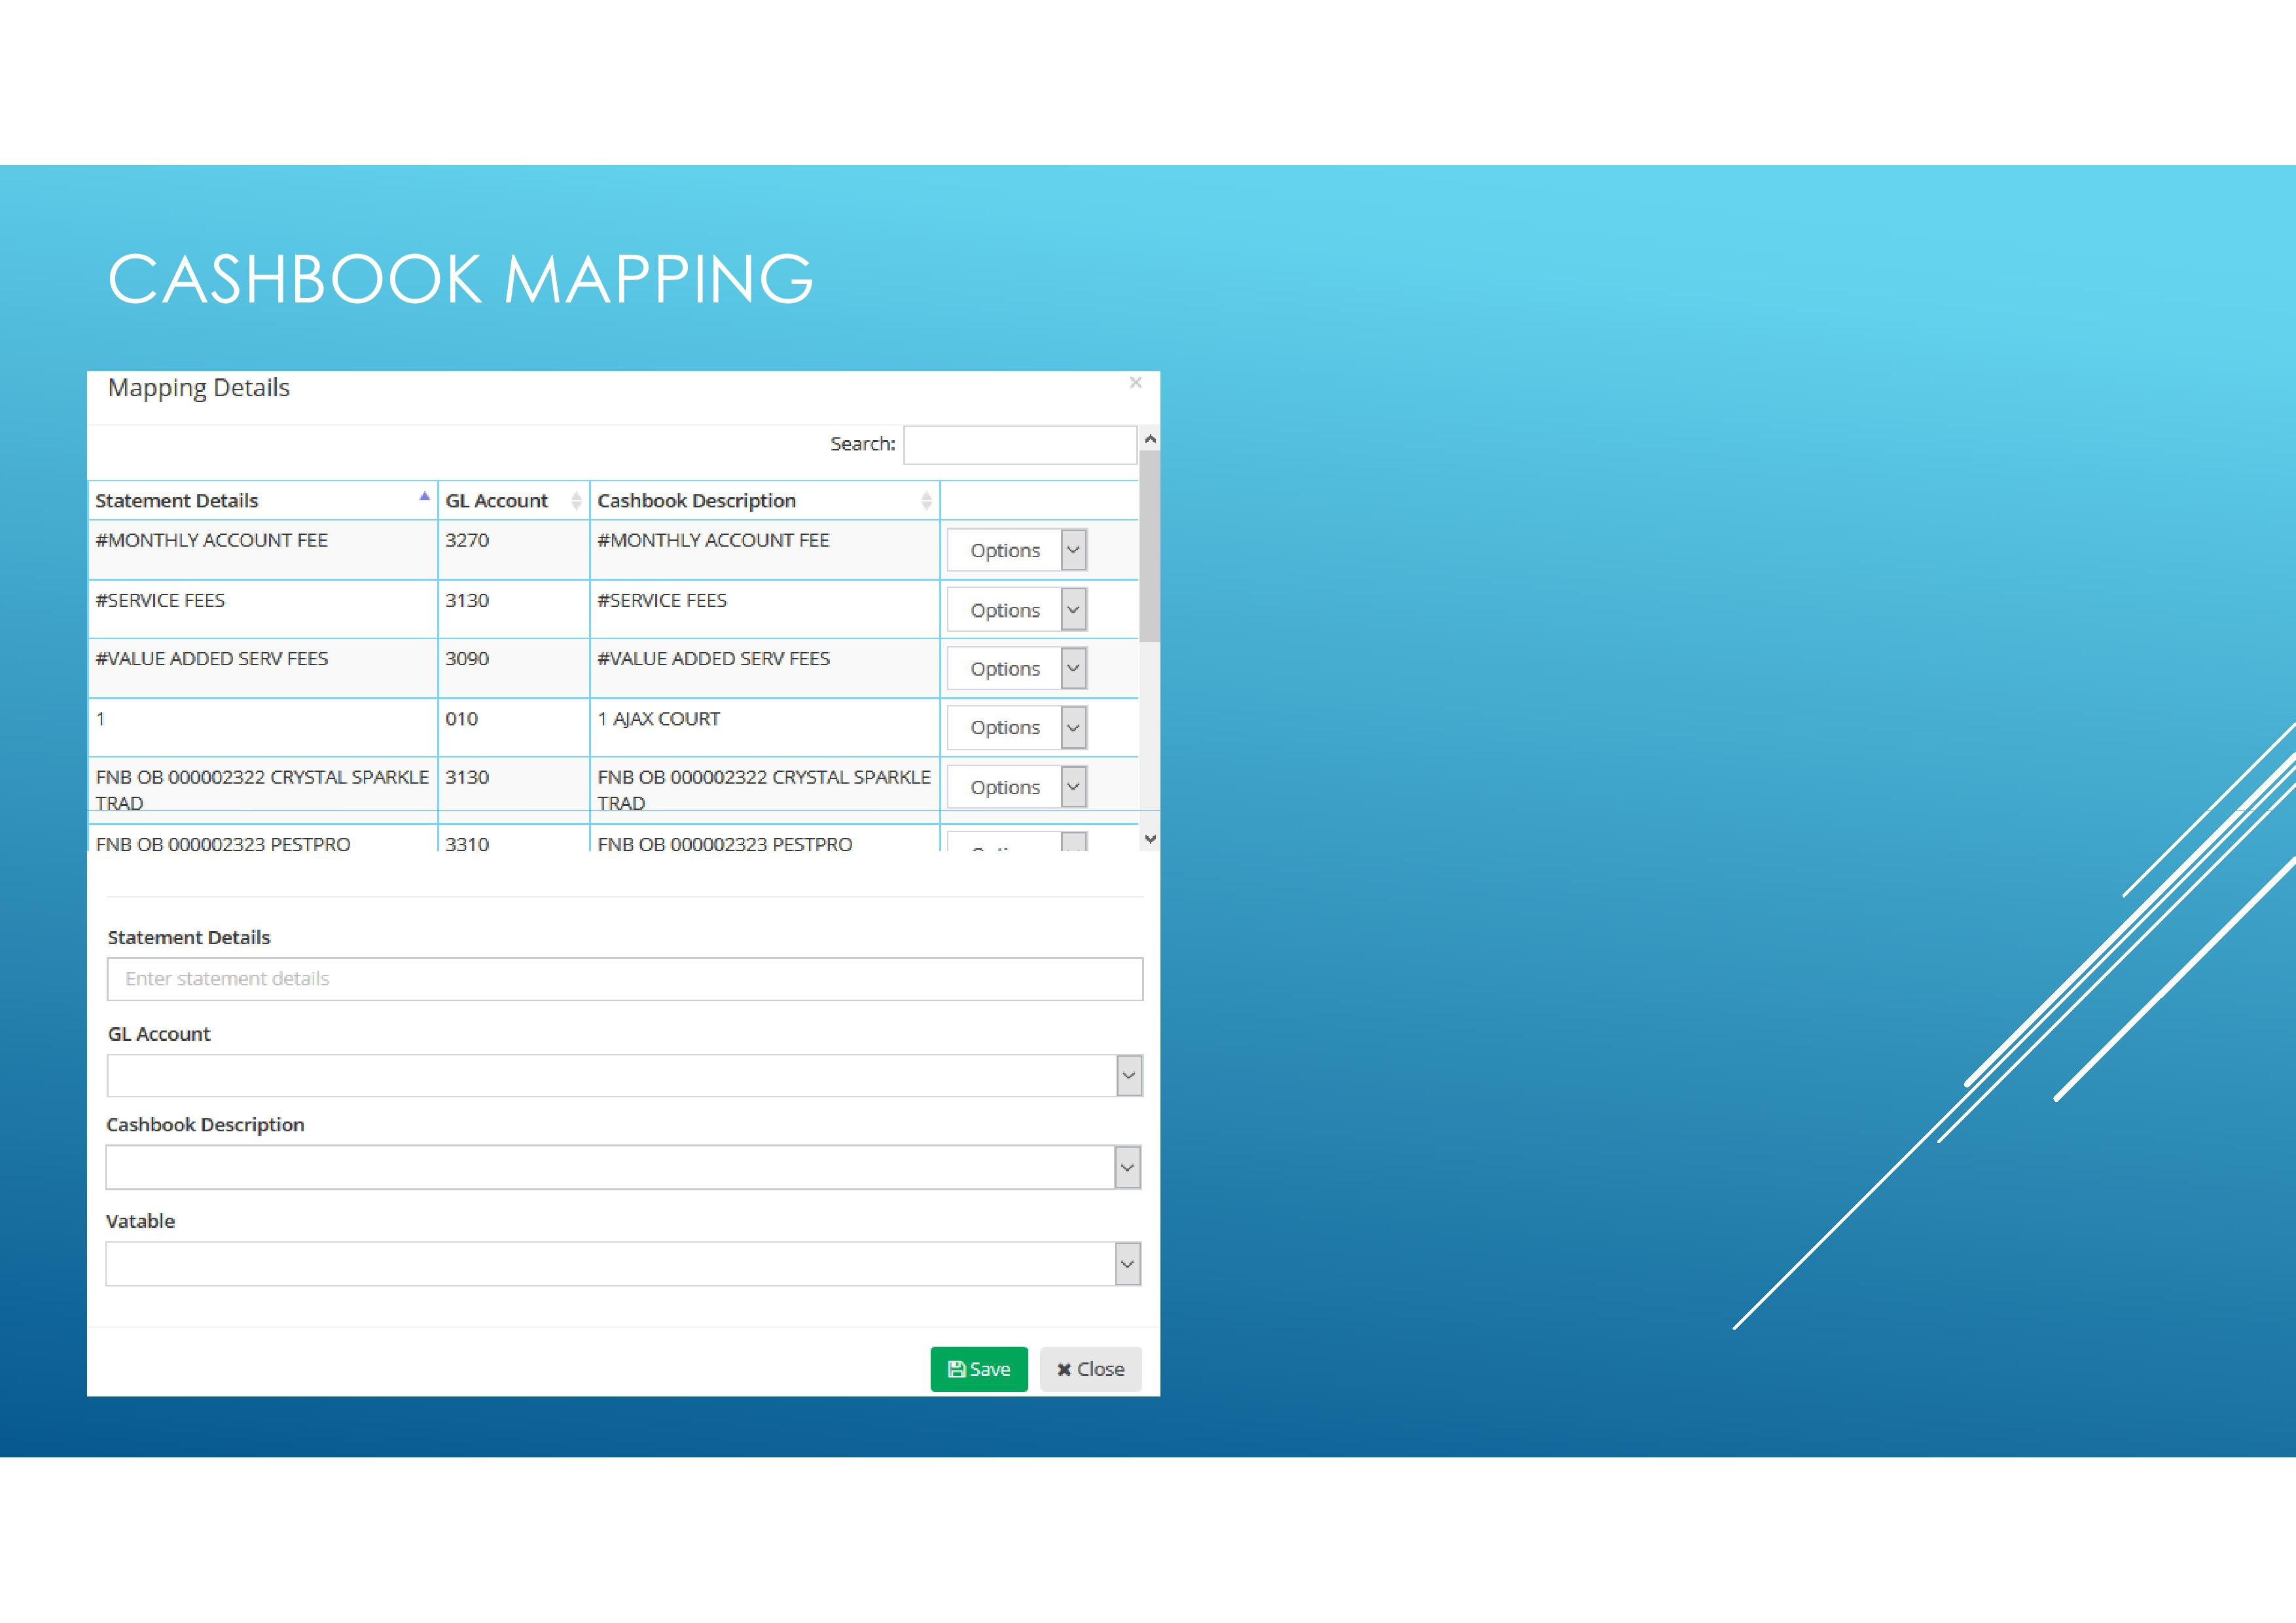 Cash Book Mapping